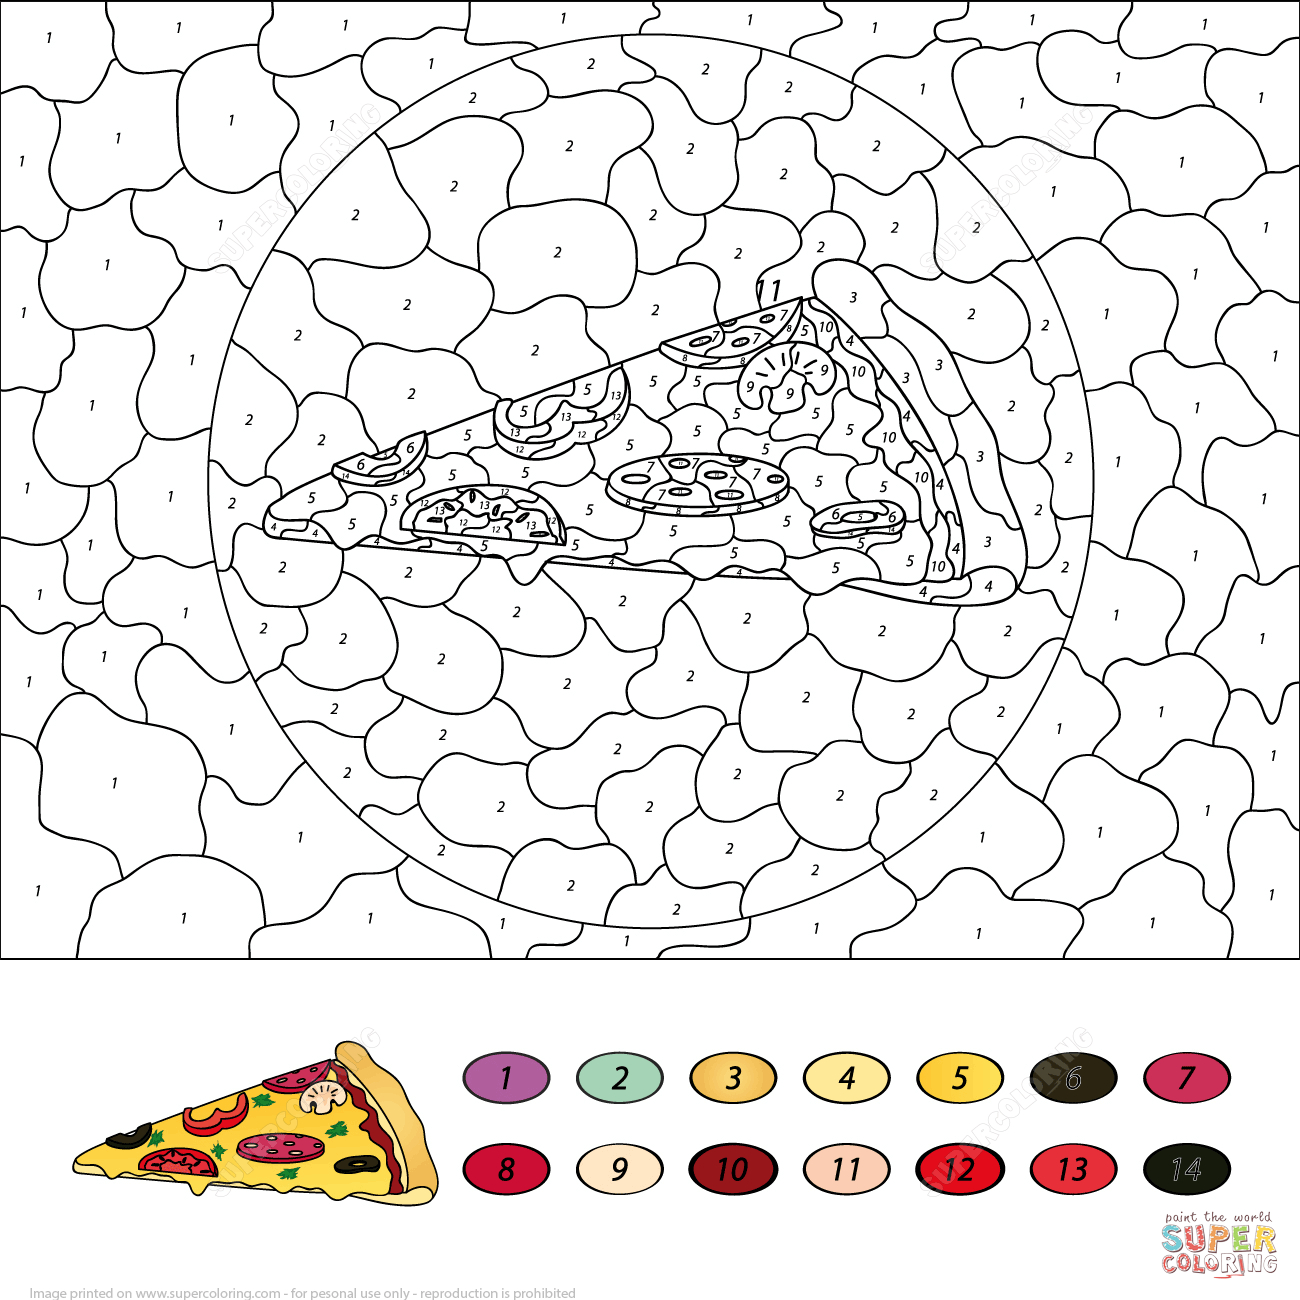 Pizza Colornumber | Free Printable Coloring Pages - Free Printable Paint By Number Coloring Pages